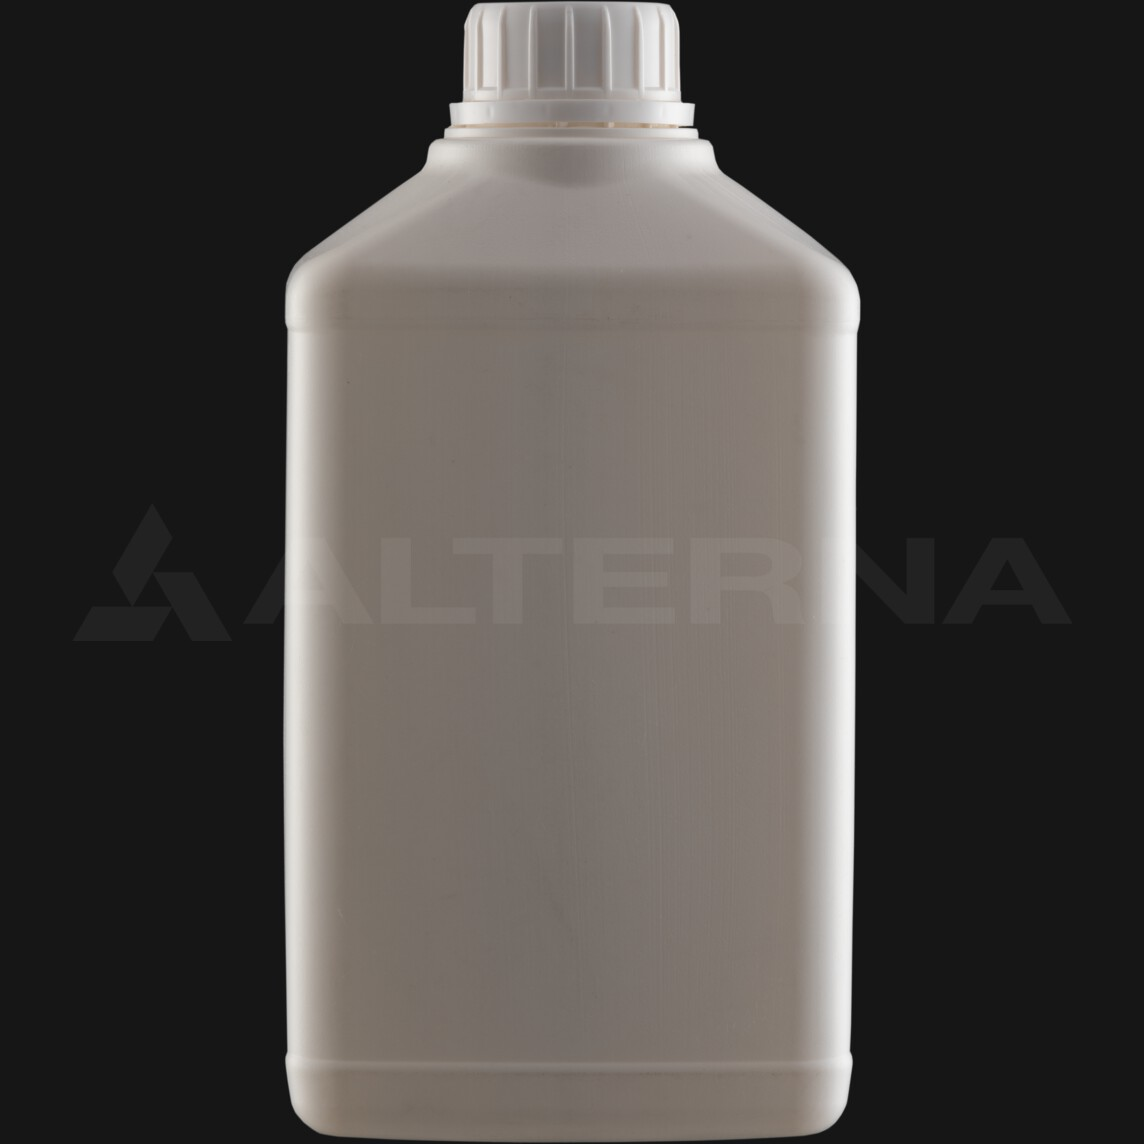 1000 ml HDPE Rectangular Bottle with 38 mm Foam Seal Secure Cap